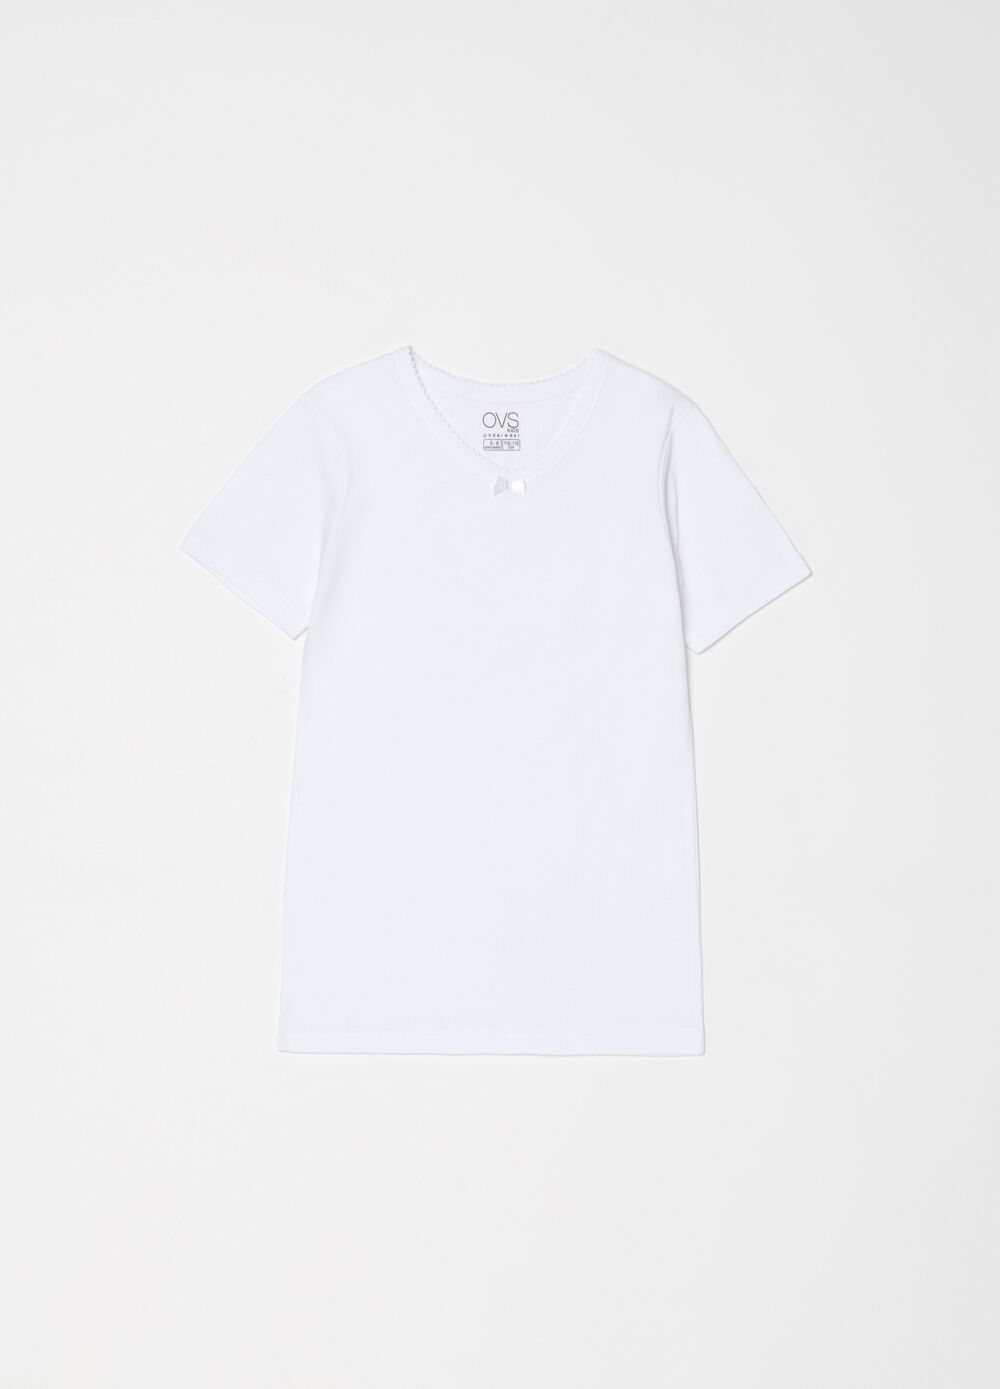 Solid colour undershirt in 100% organic cotton